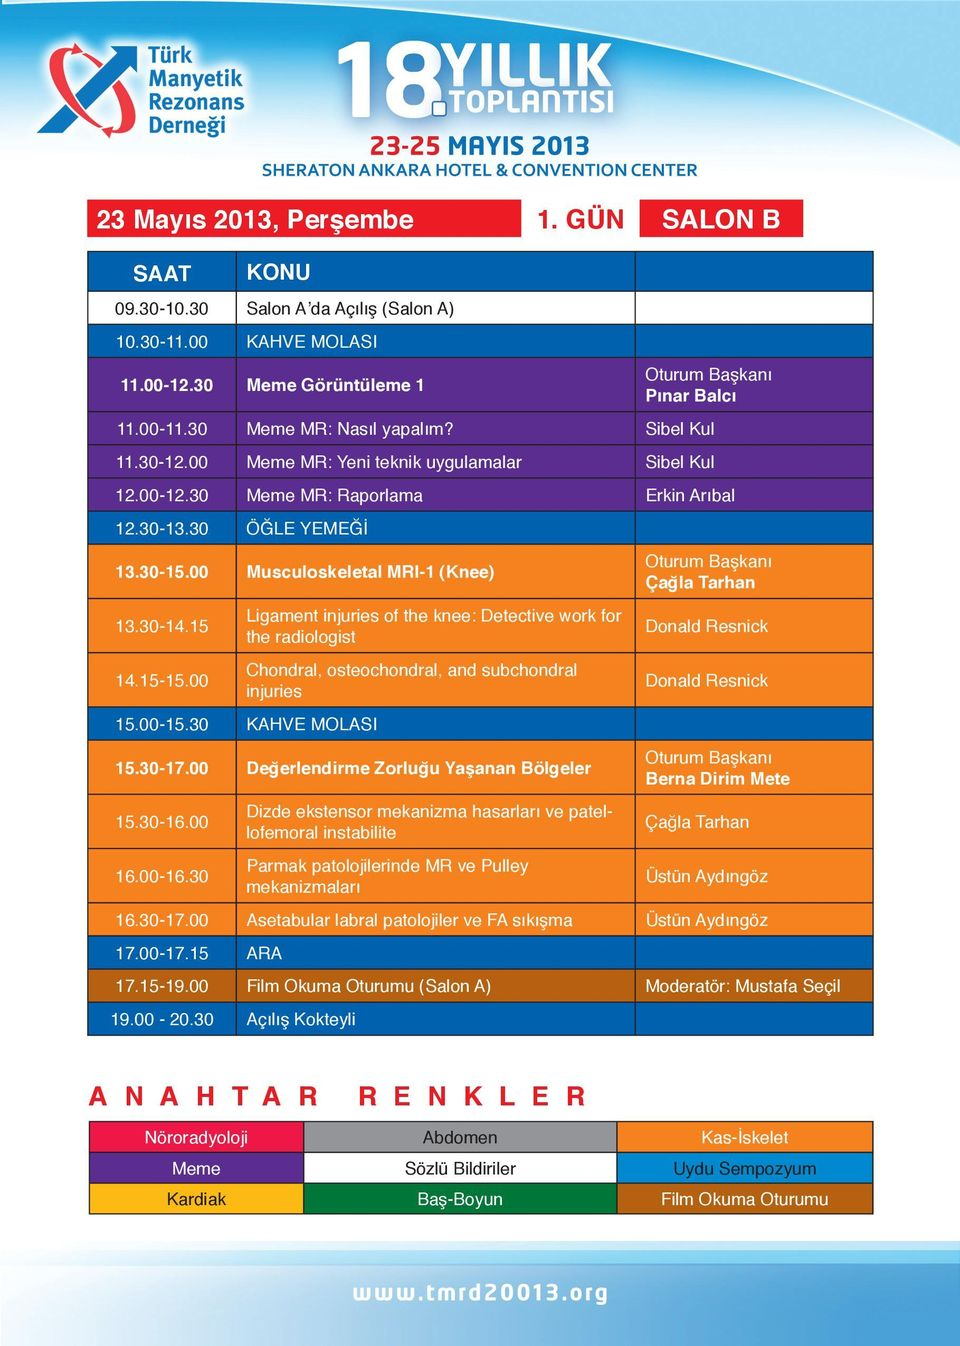 00 Ligament injuries of the knee: Detective work for the radiologist Chondral, osteochondral, and subchondral injuries 15.00-15.30 KAHVE MOLASI 15.30-17.00 Değerlendirme Zorluğu Yaşanan Bölgeler 15.